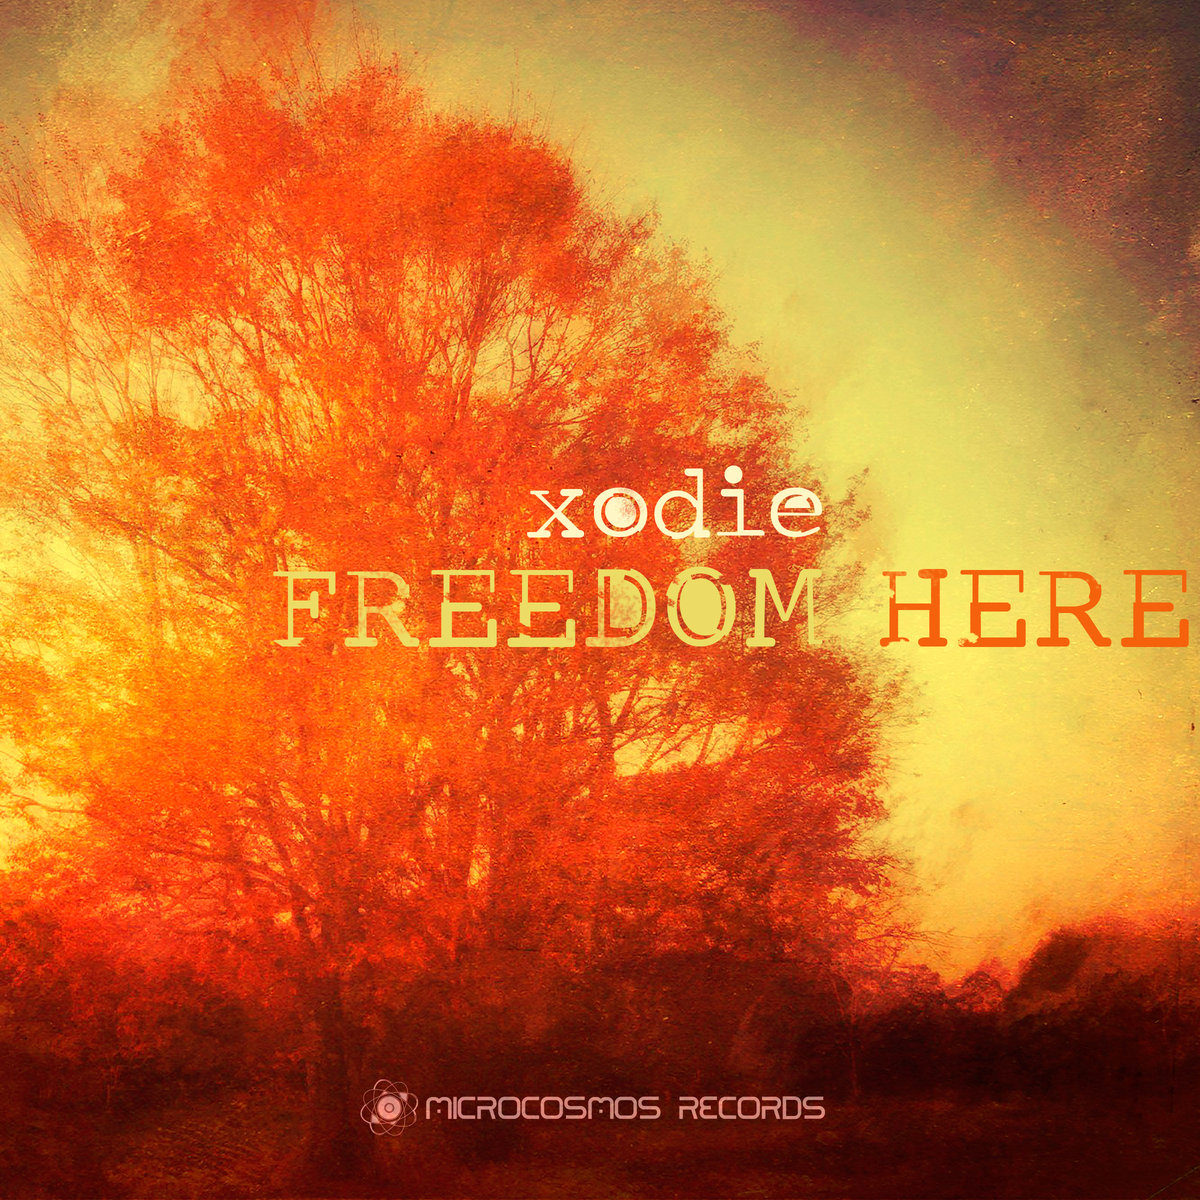 Xodie - Deepration @ 'Freedom Here' album (ambient, chill-out)